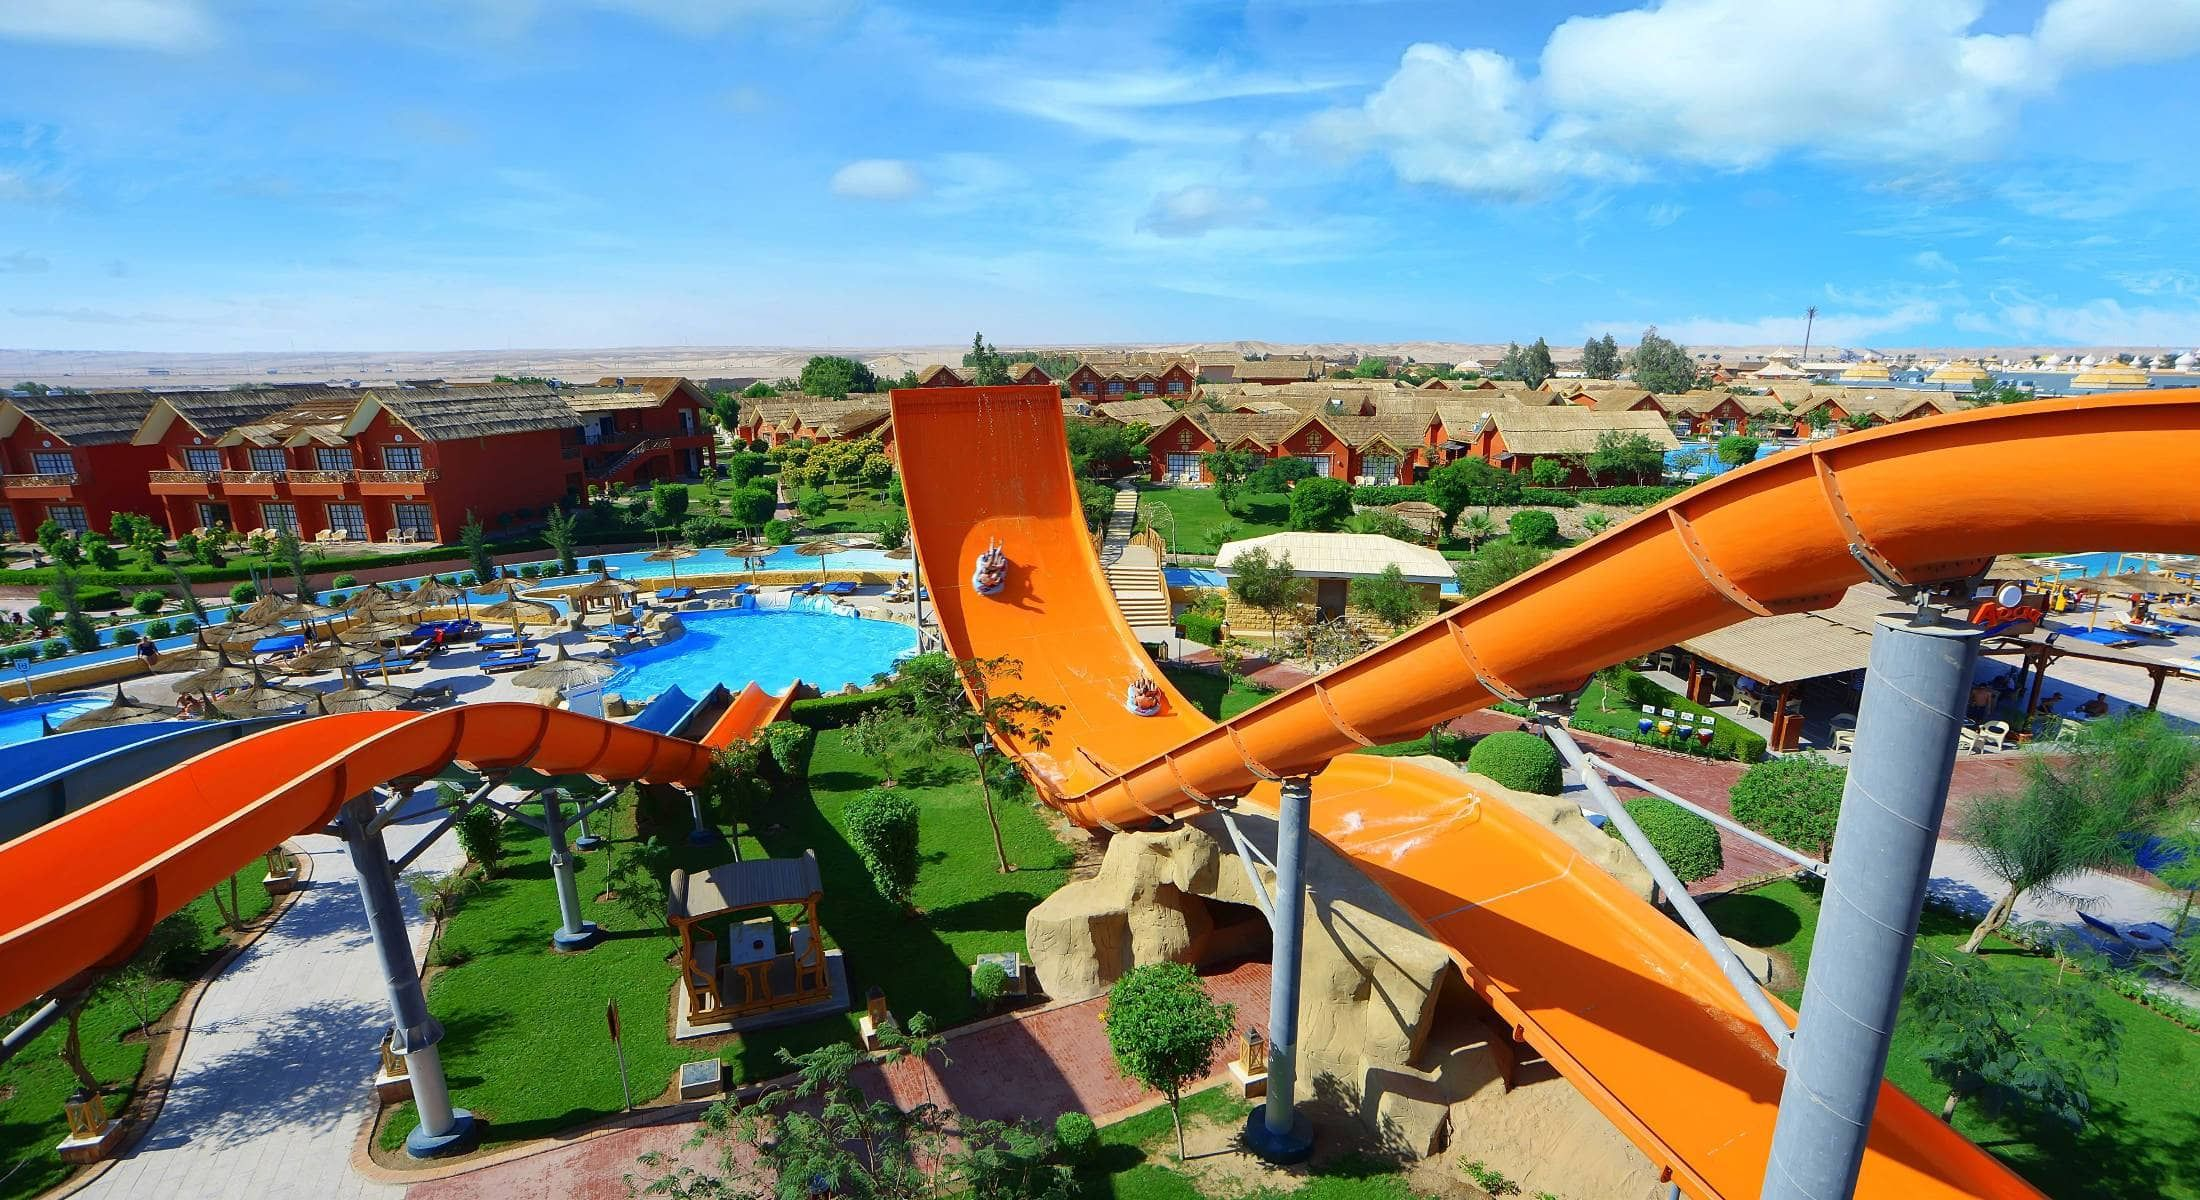 Waterpark Jungle. Hurghada - a paradise in Egypt 75